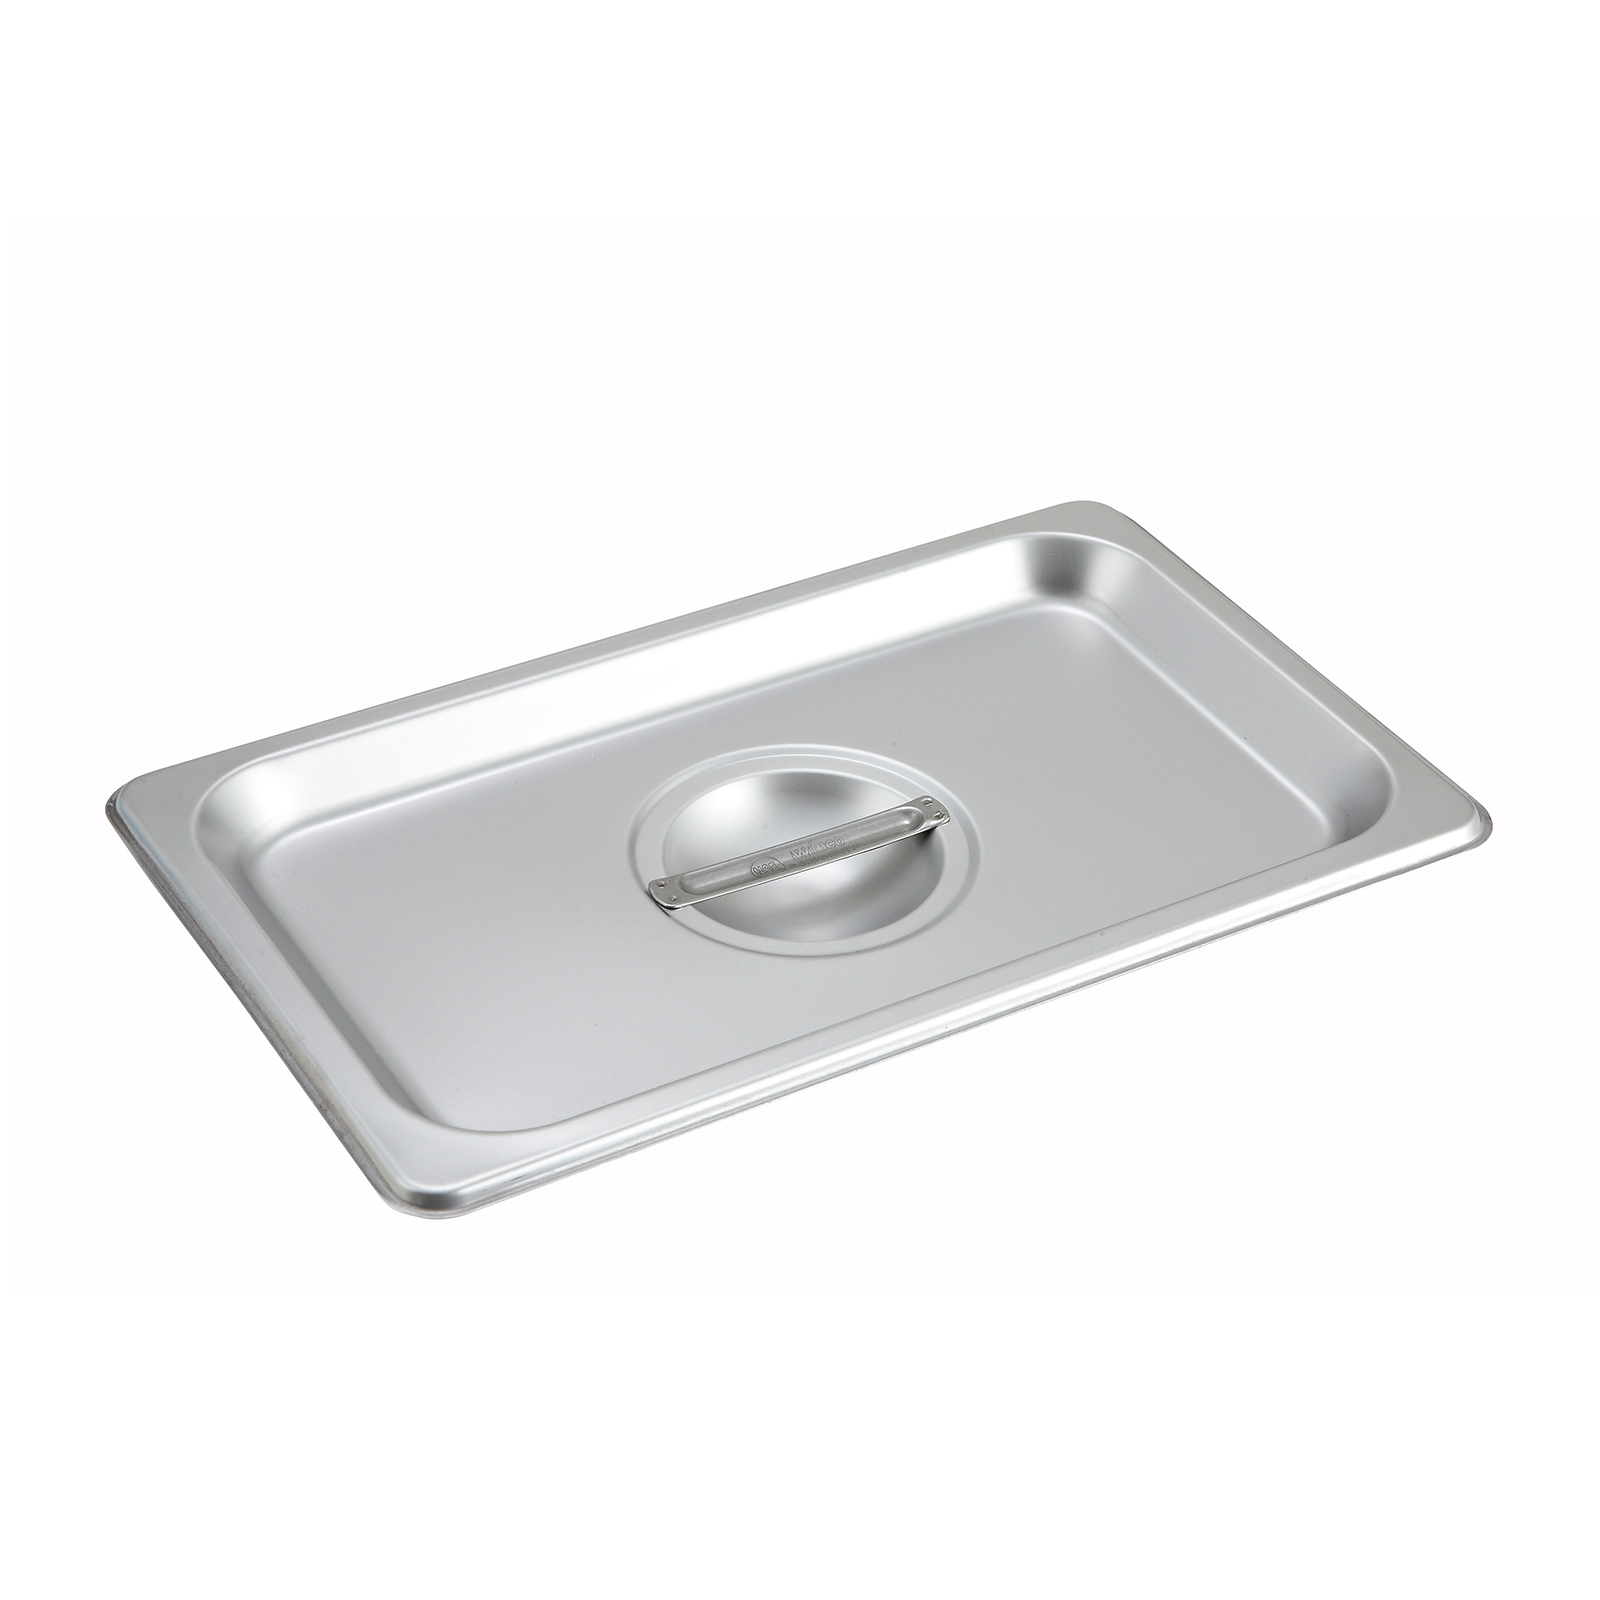 2400-1271 Winco SPSCQ steam table pan cover, stainless steel